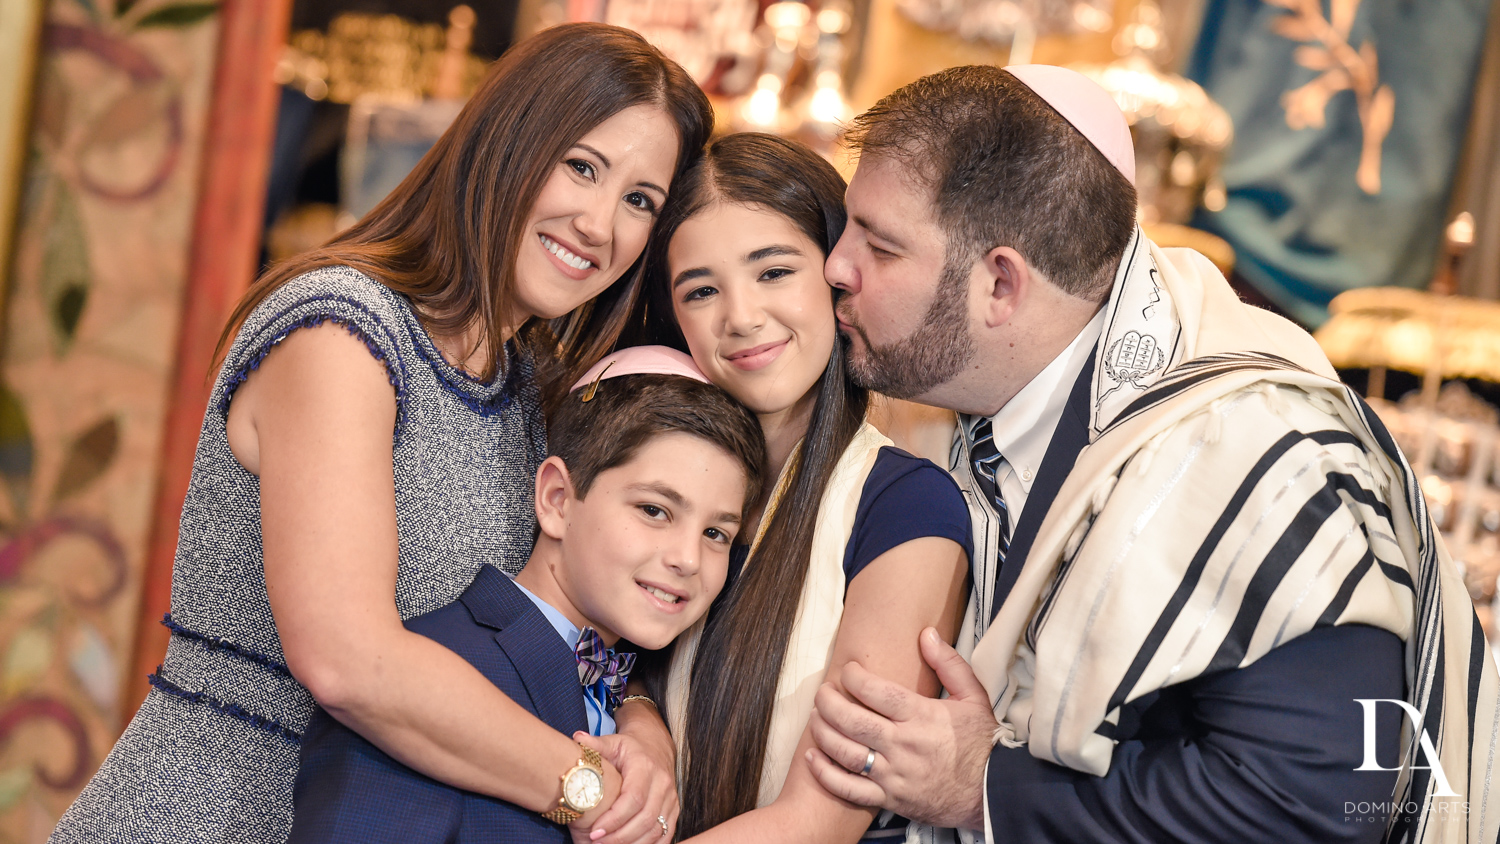 Lifestyle family photography at Temple Bnai Torah Mitzvah by Domino Arts Photography